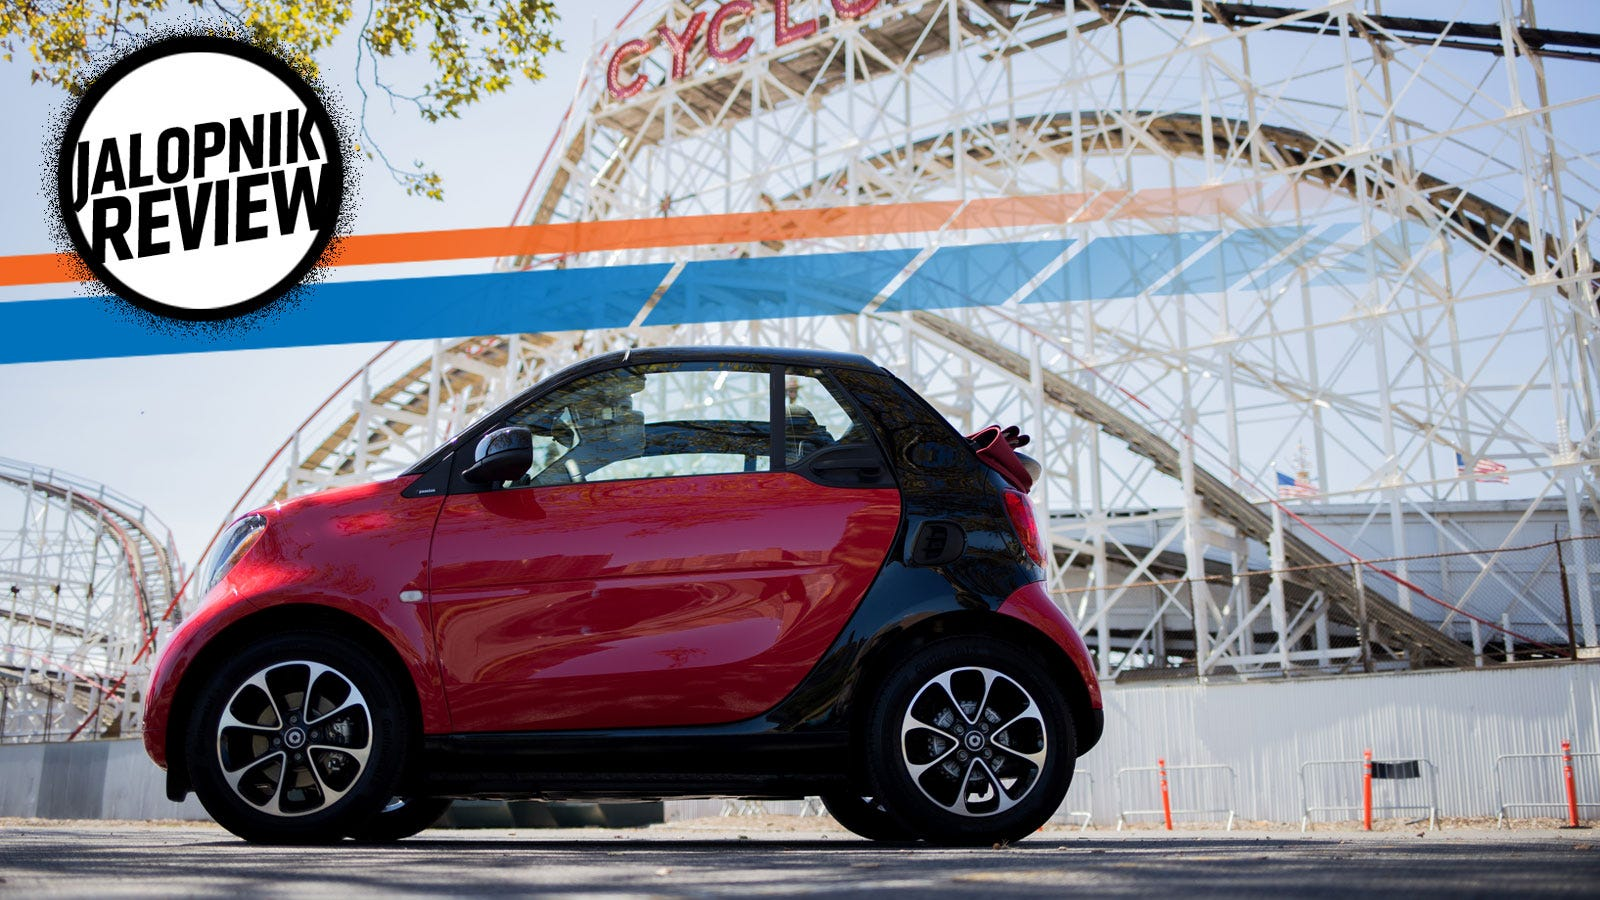 Smart car News Videos Reviews and Gossip  Jalopnik